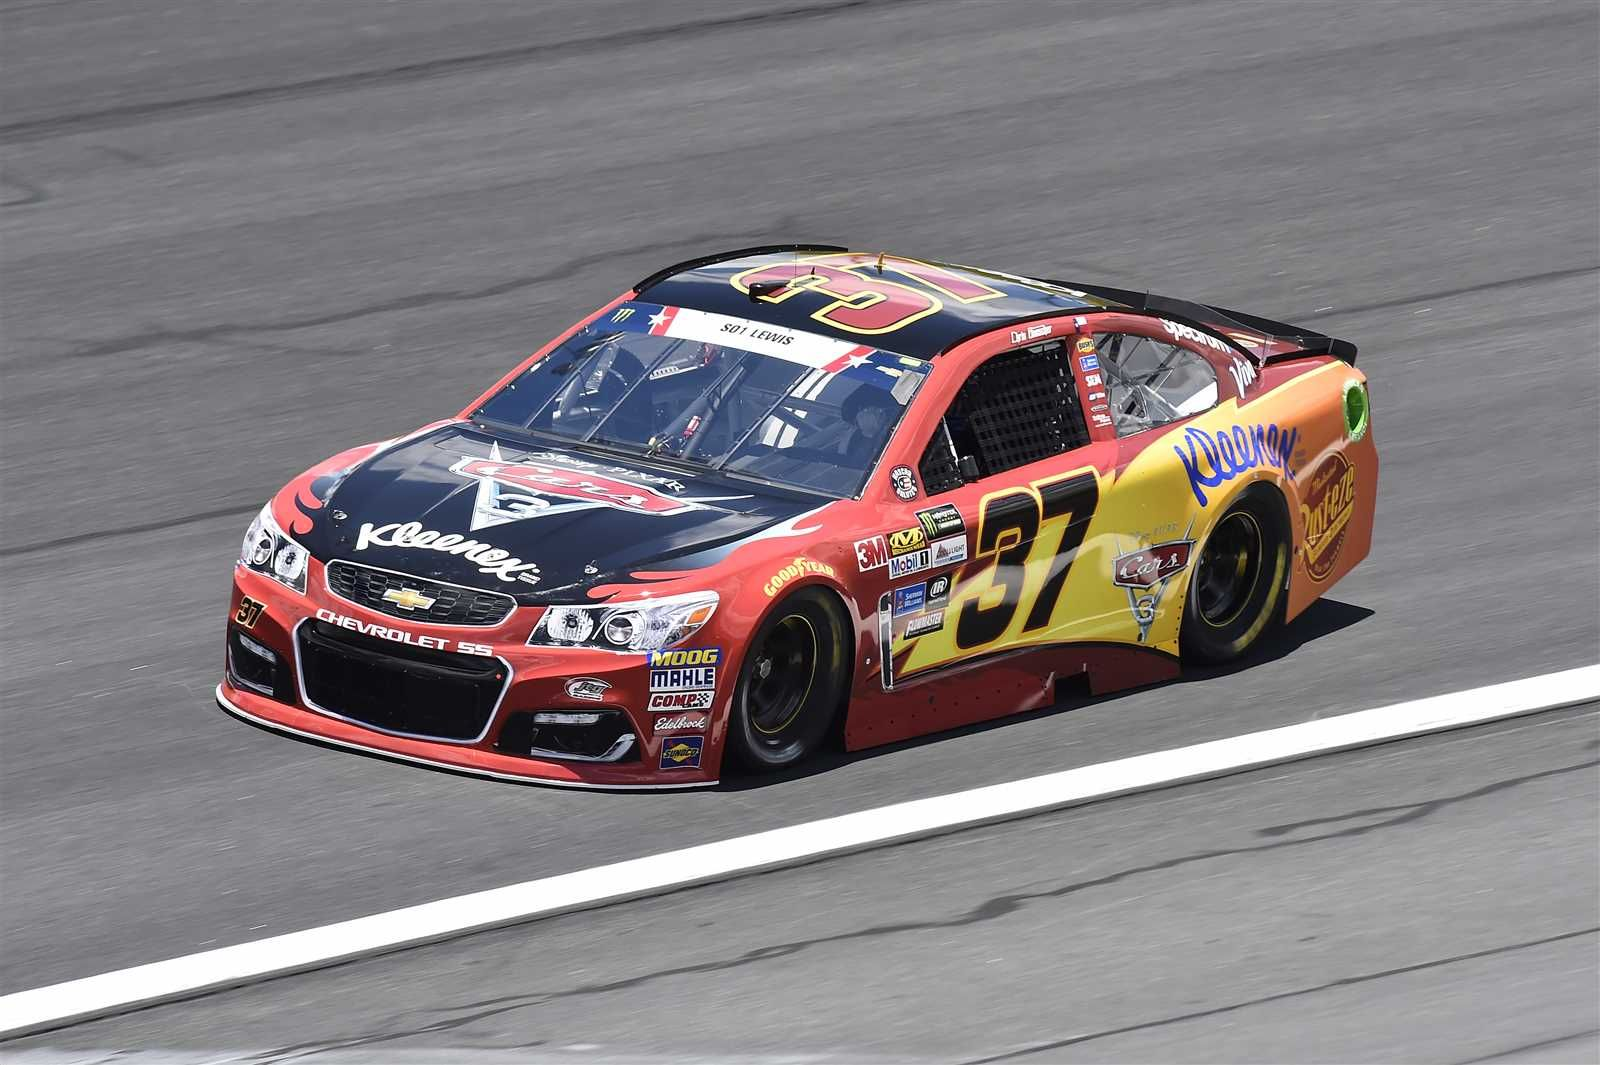 Coca Cola 600 May 28 2017 Servicemember So1 Jason Lewis Chris Buescher Will Start 29th In The No 37 Jtg Daugherty Racing Chevrolet